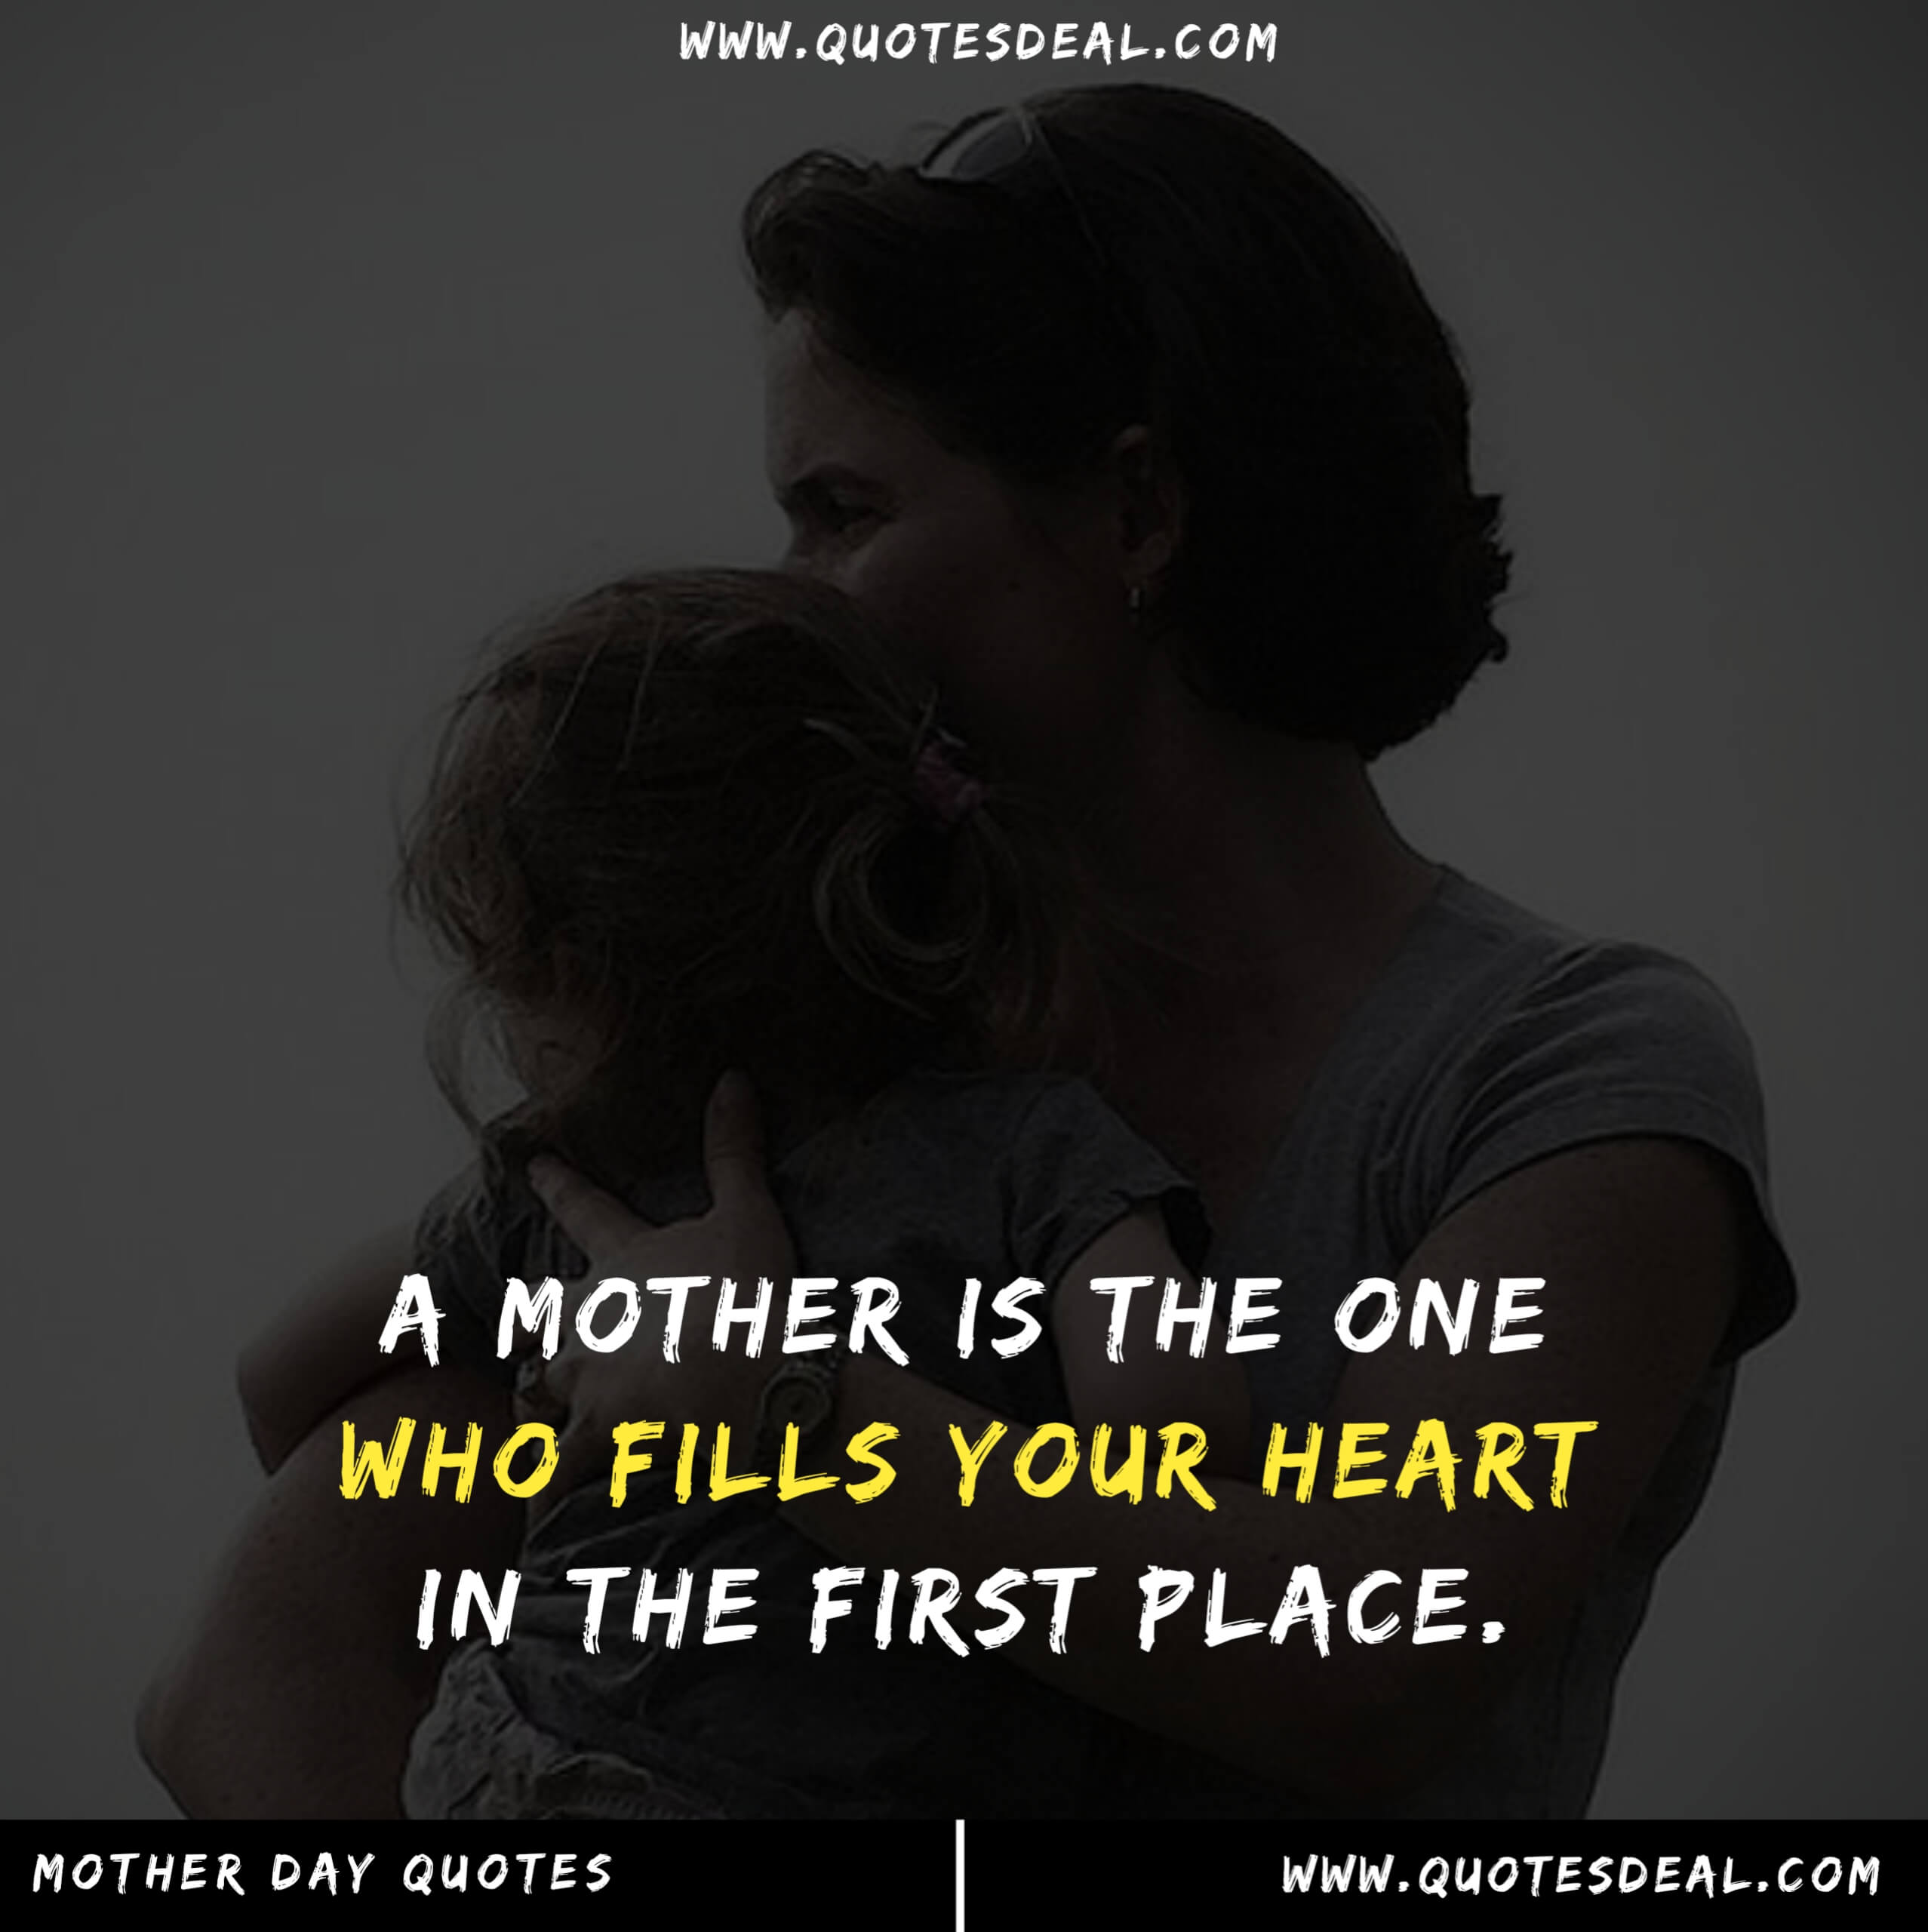 who fills your heart